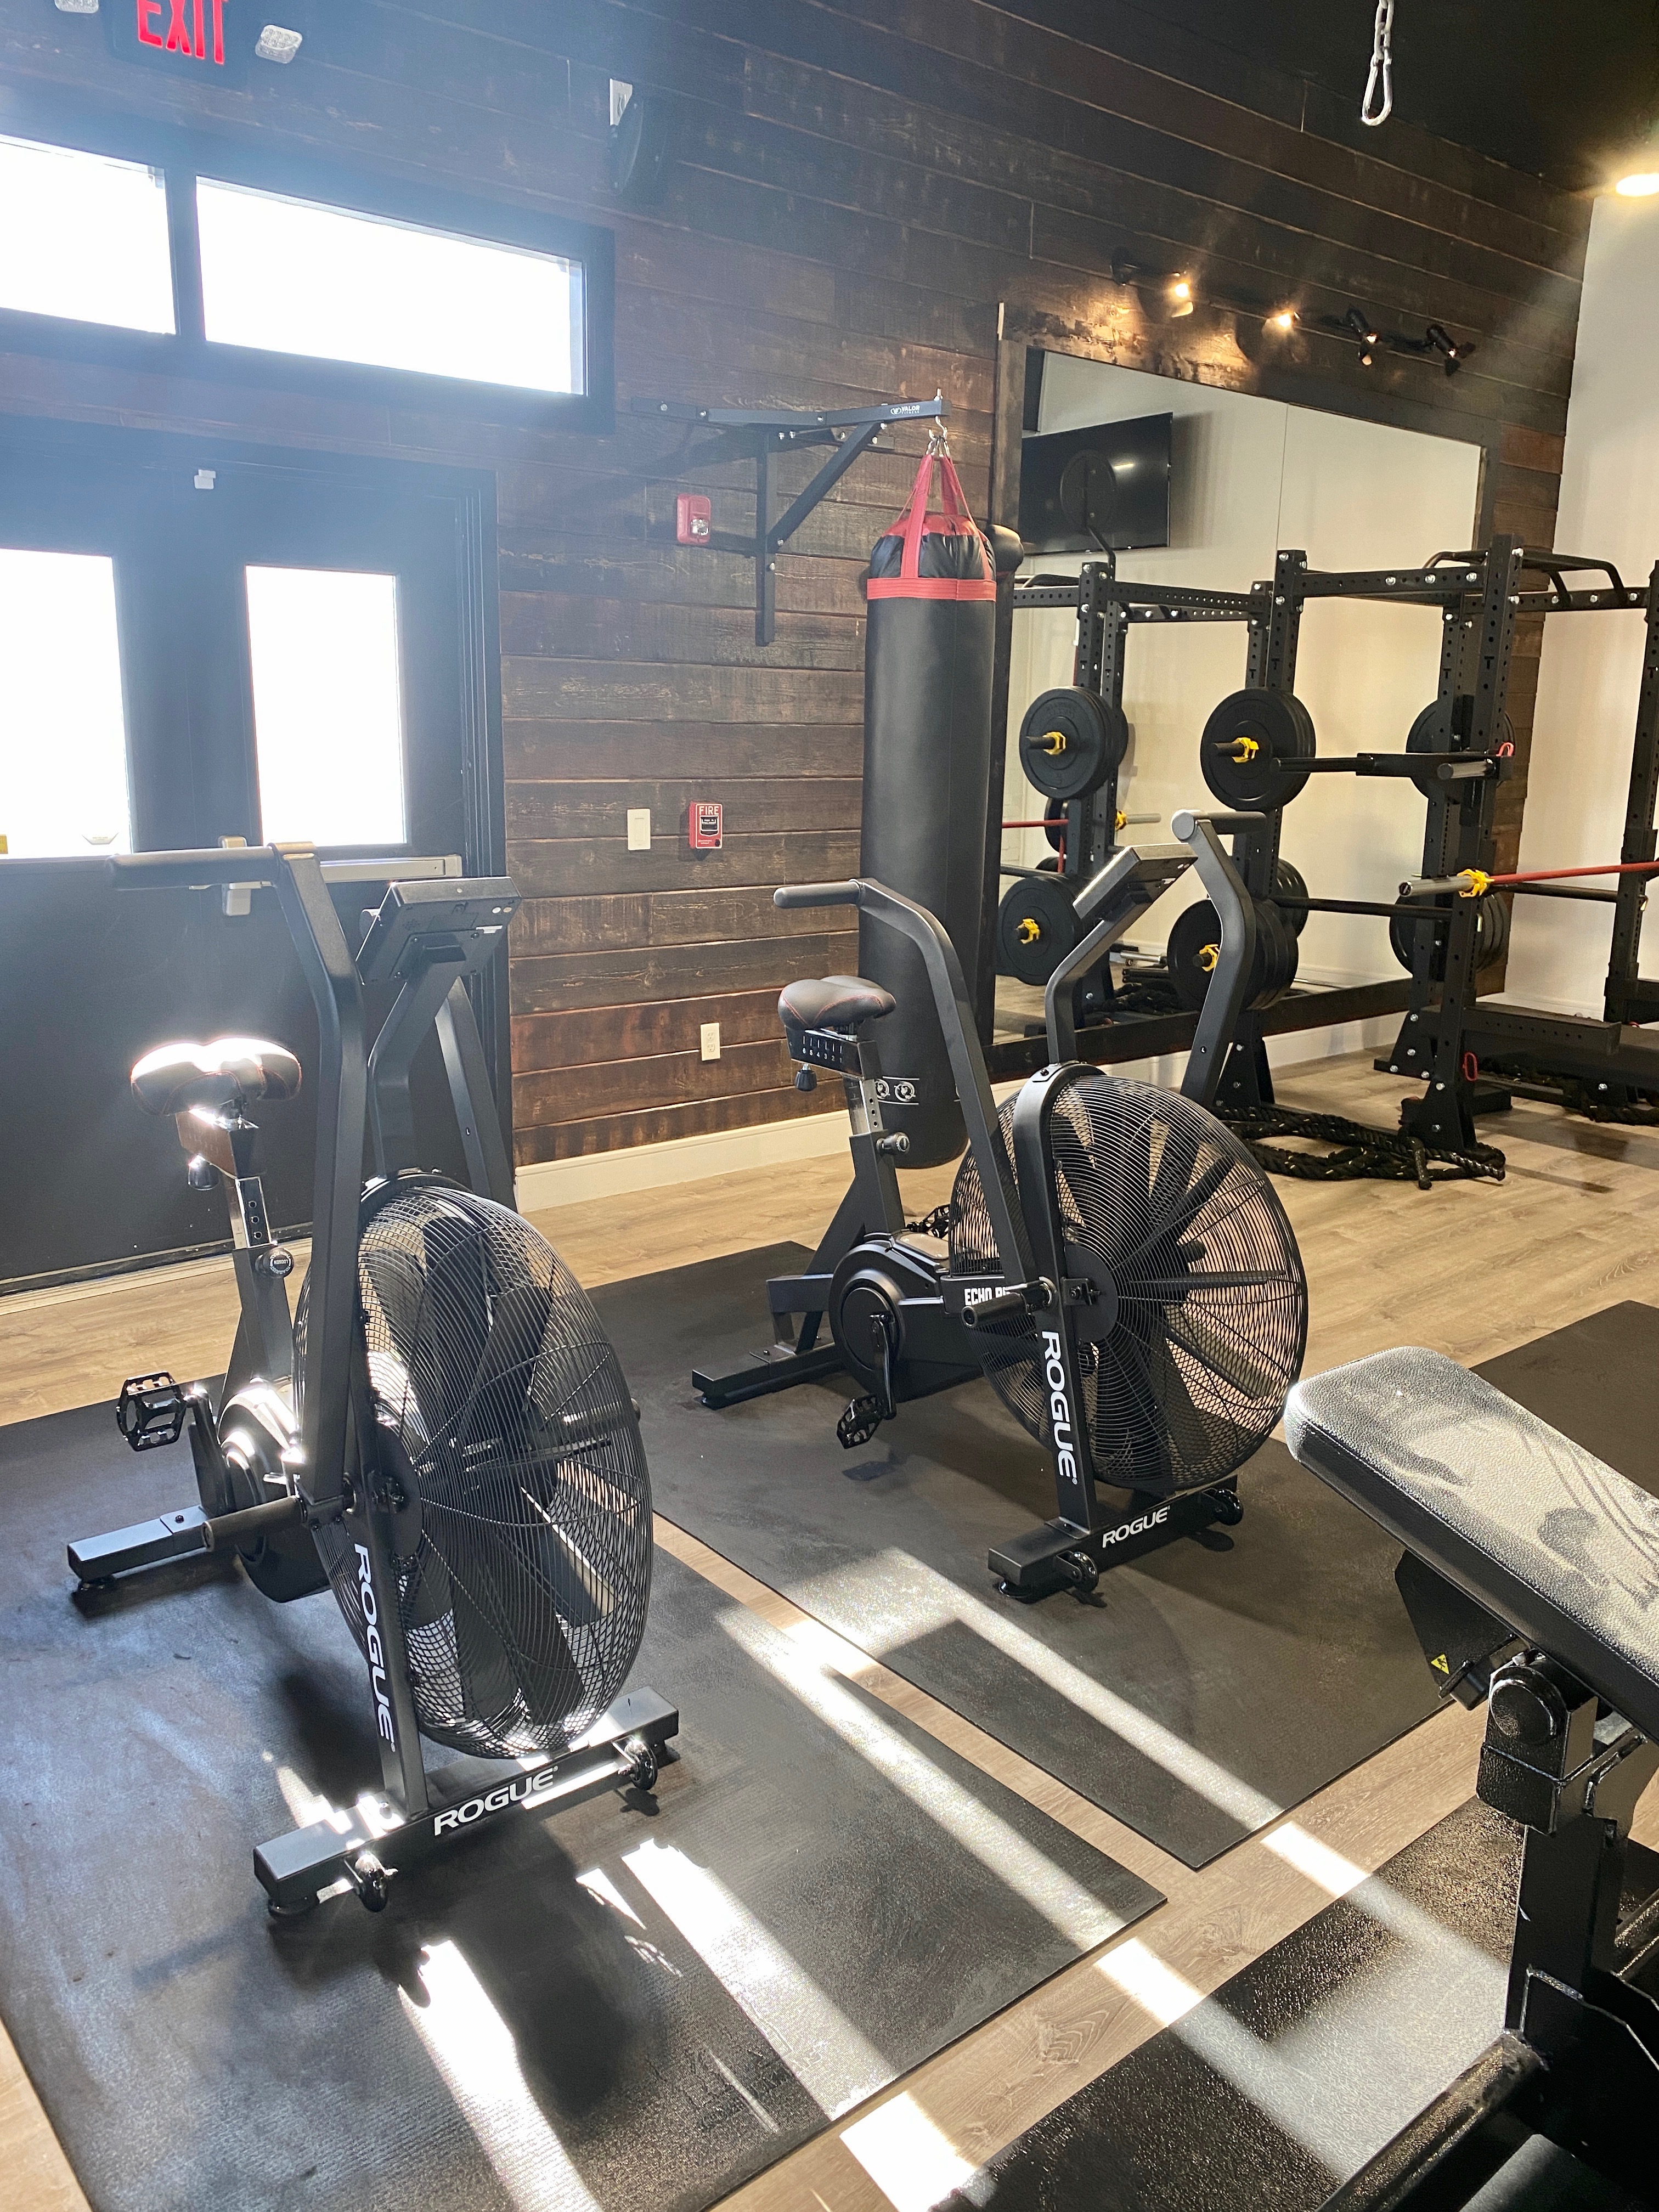 Air Bikes for Interval Based Cardio